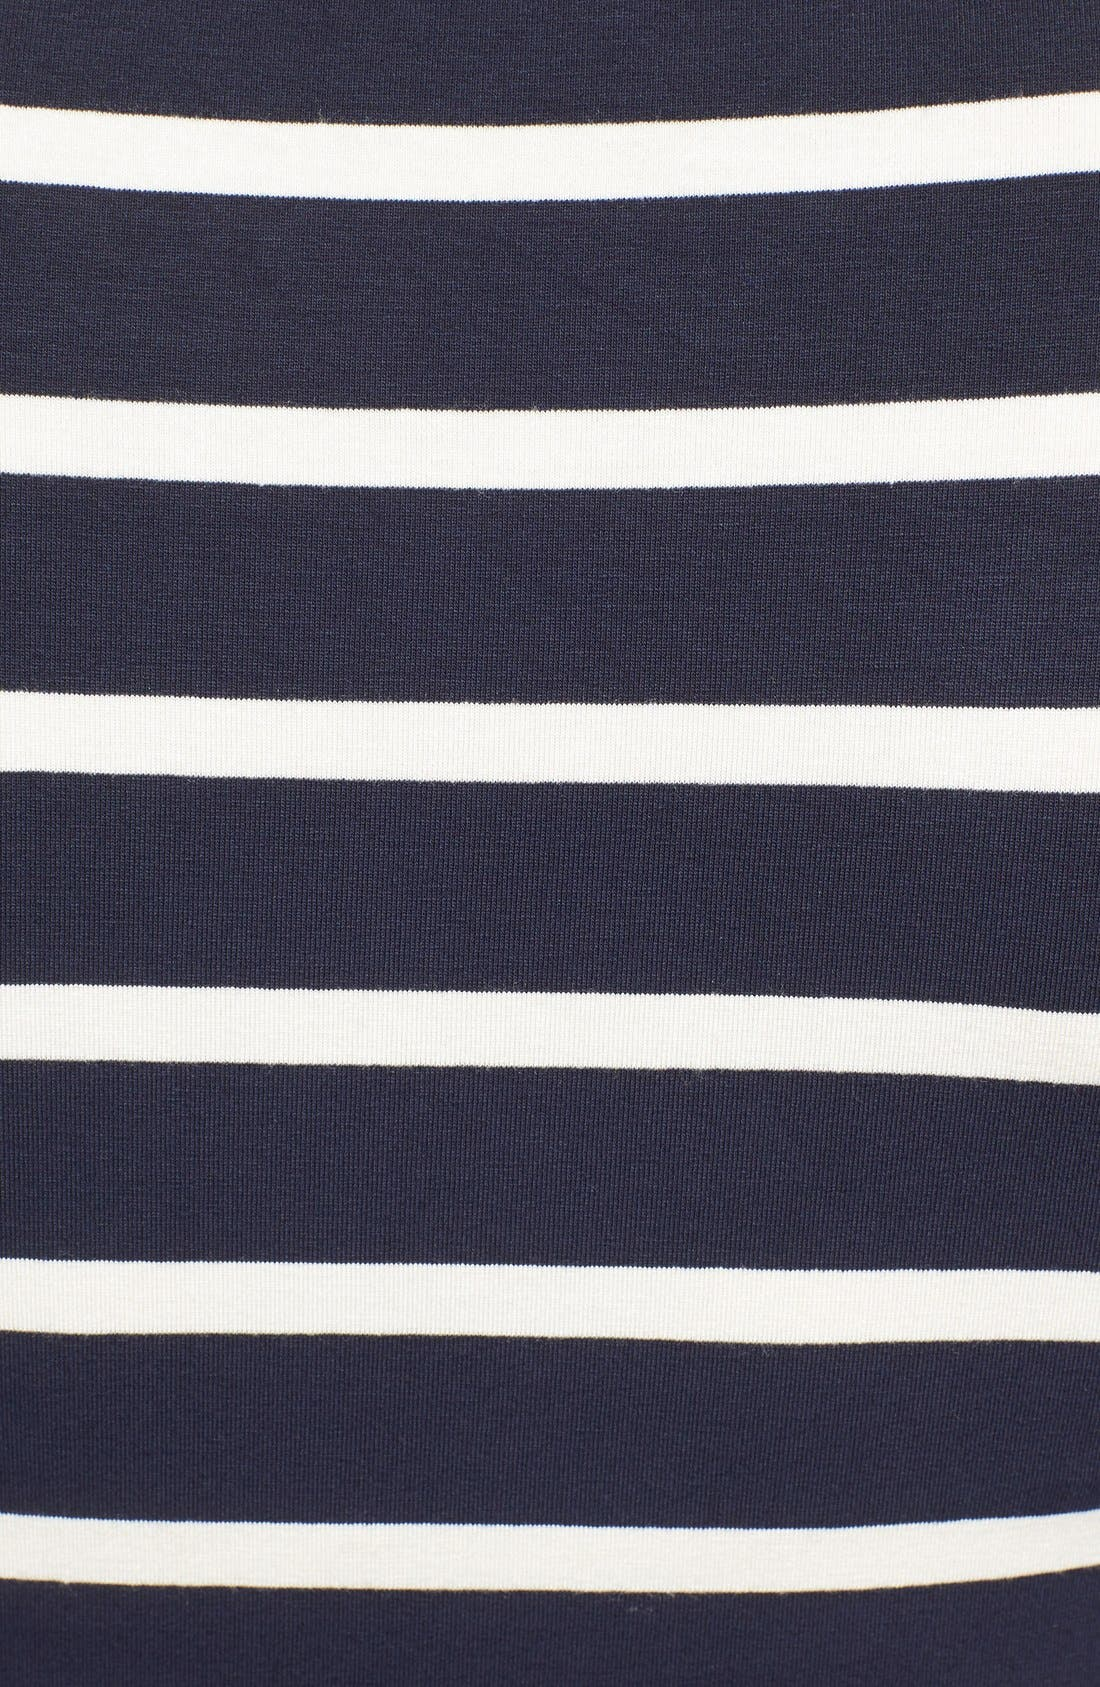 'Wendy' Nursing Top,                             Alternate thumbnail 5, color,                             UNEVEN NAVY STRIPE